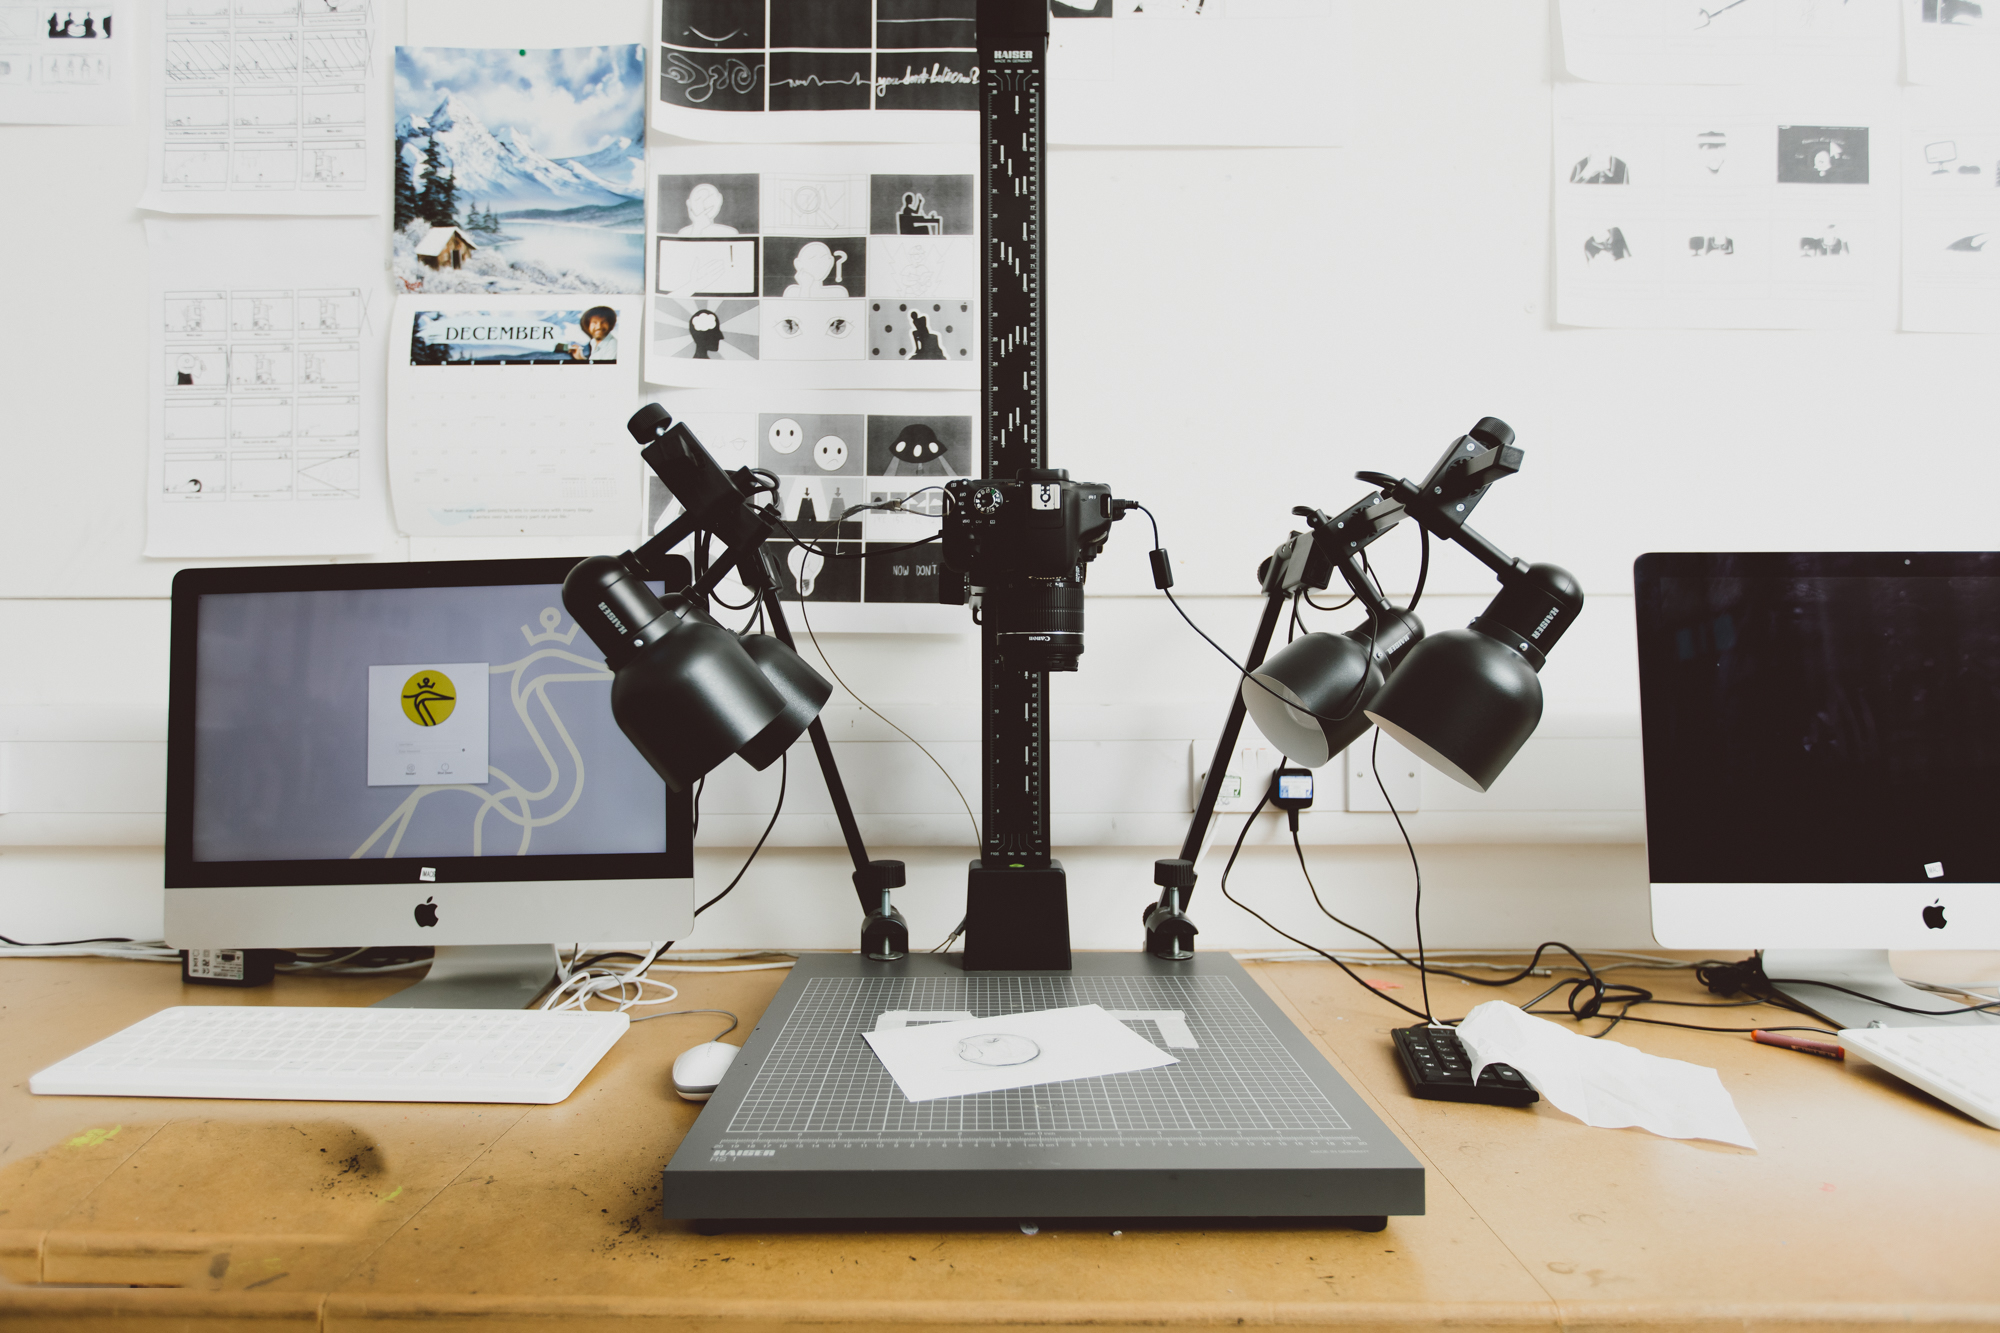 A rostrum and workstation in the Illustration and Animation Studio